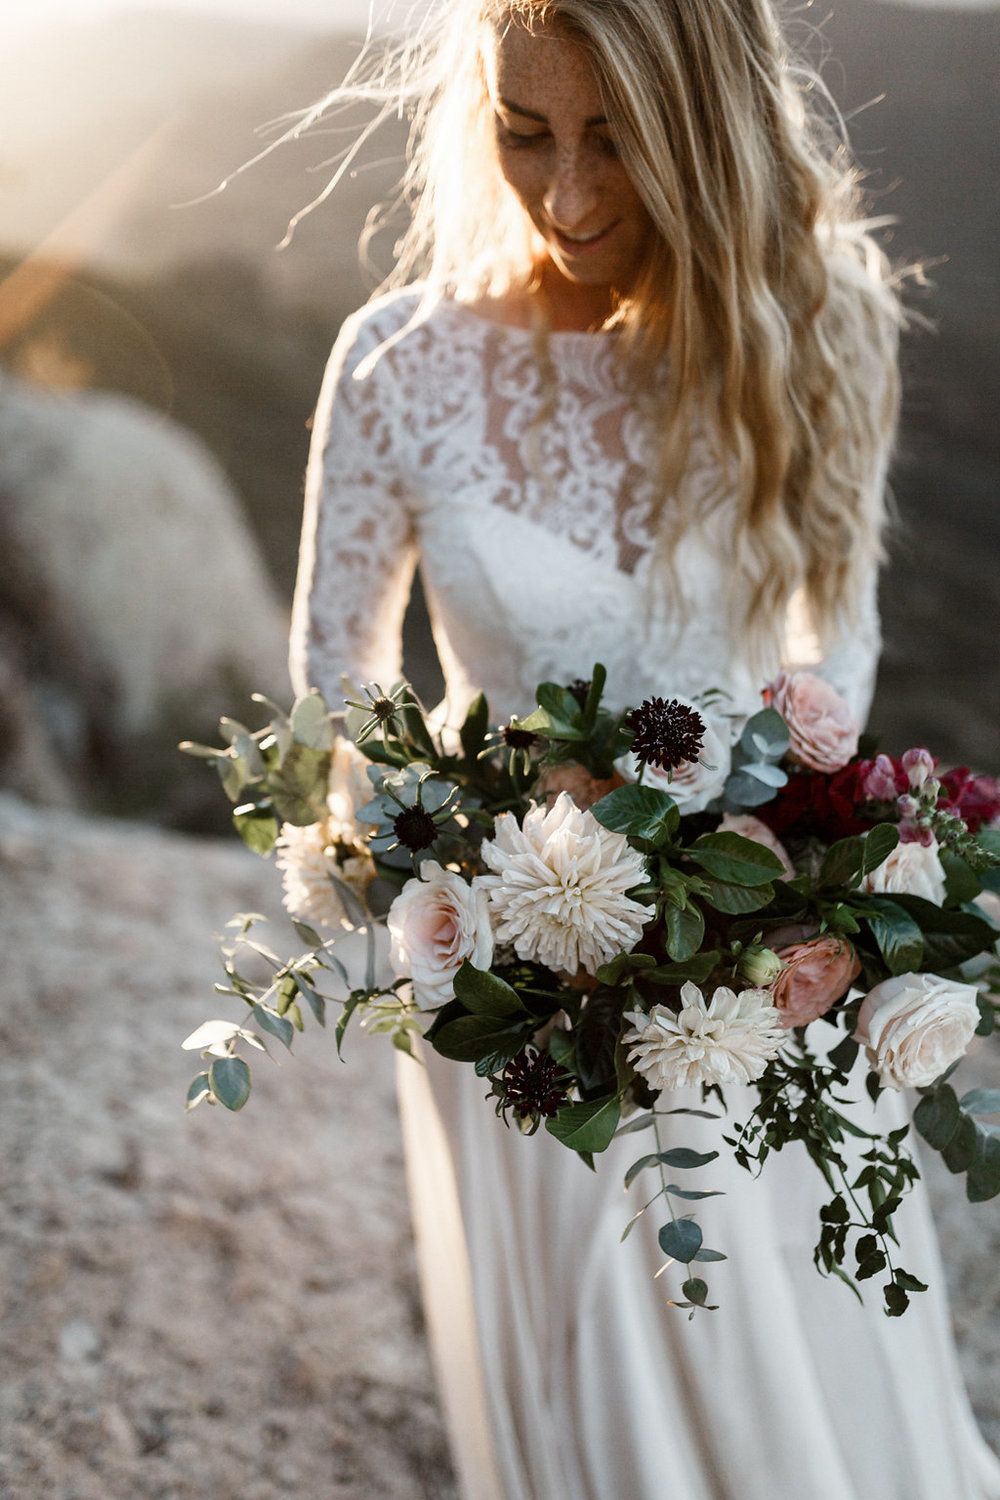 organic & romantic dahlia, cappuccino rose bridal bouquet | Malibu Weddings | Compass Floral Design | Wedding Florist in San Diego and Southern California | Devin Jenkins Photography  #elopement  #elopementinspiration   #wedding   #weddinginspiration   #bohowedding   #bohemianwedding   #weddingceremony  #outdoorceremony   #sandiegoweddingflorist   #ojaiweddingflorist  #santabarbaraweddingflorist   #romanticweddingflowers   #bridalstyle   #weddingfashion